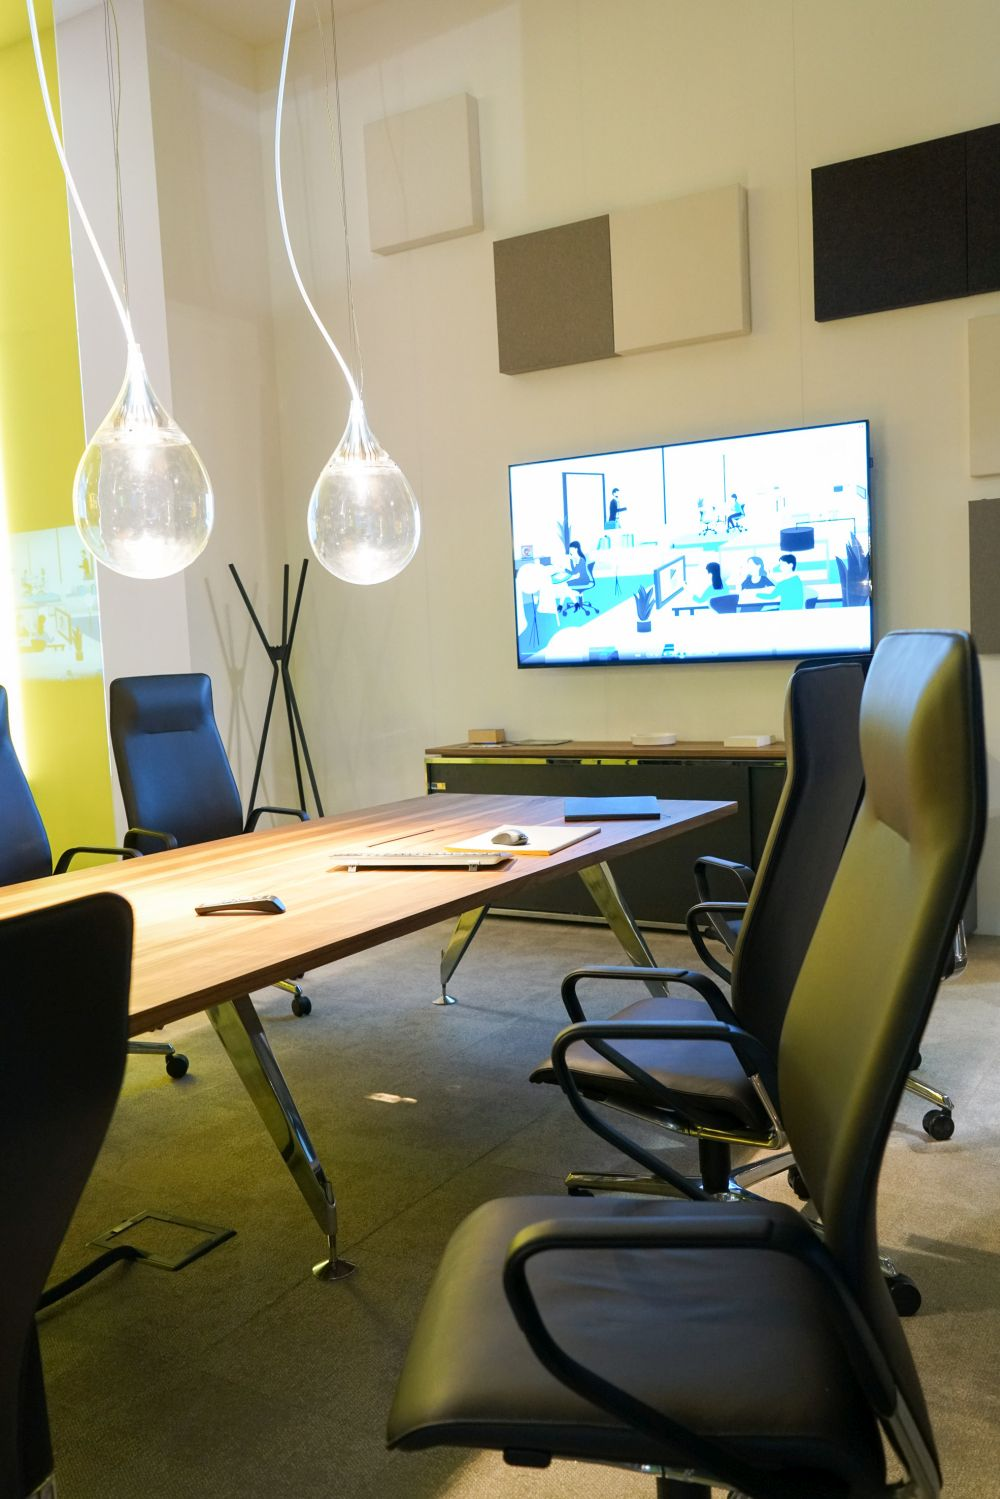 1572958304 275 make your workplace more appealing with these office furniture ideas - Make Your Workplace More Appealing with These Office Furniture Ideas